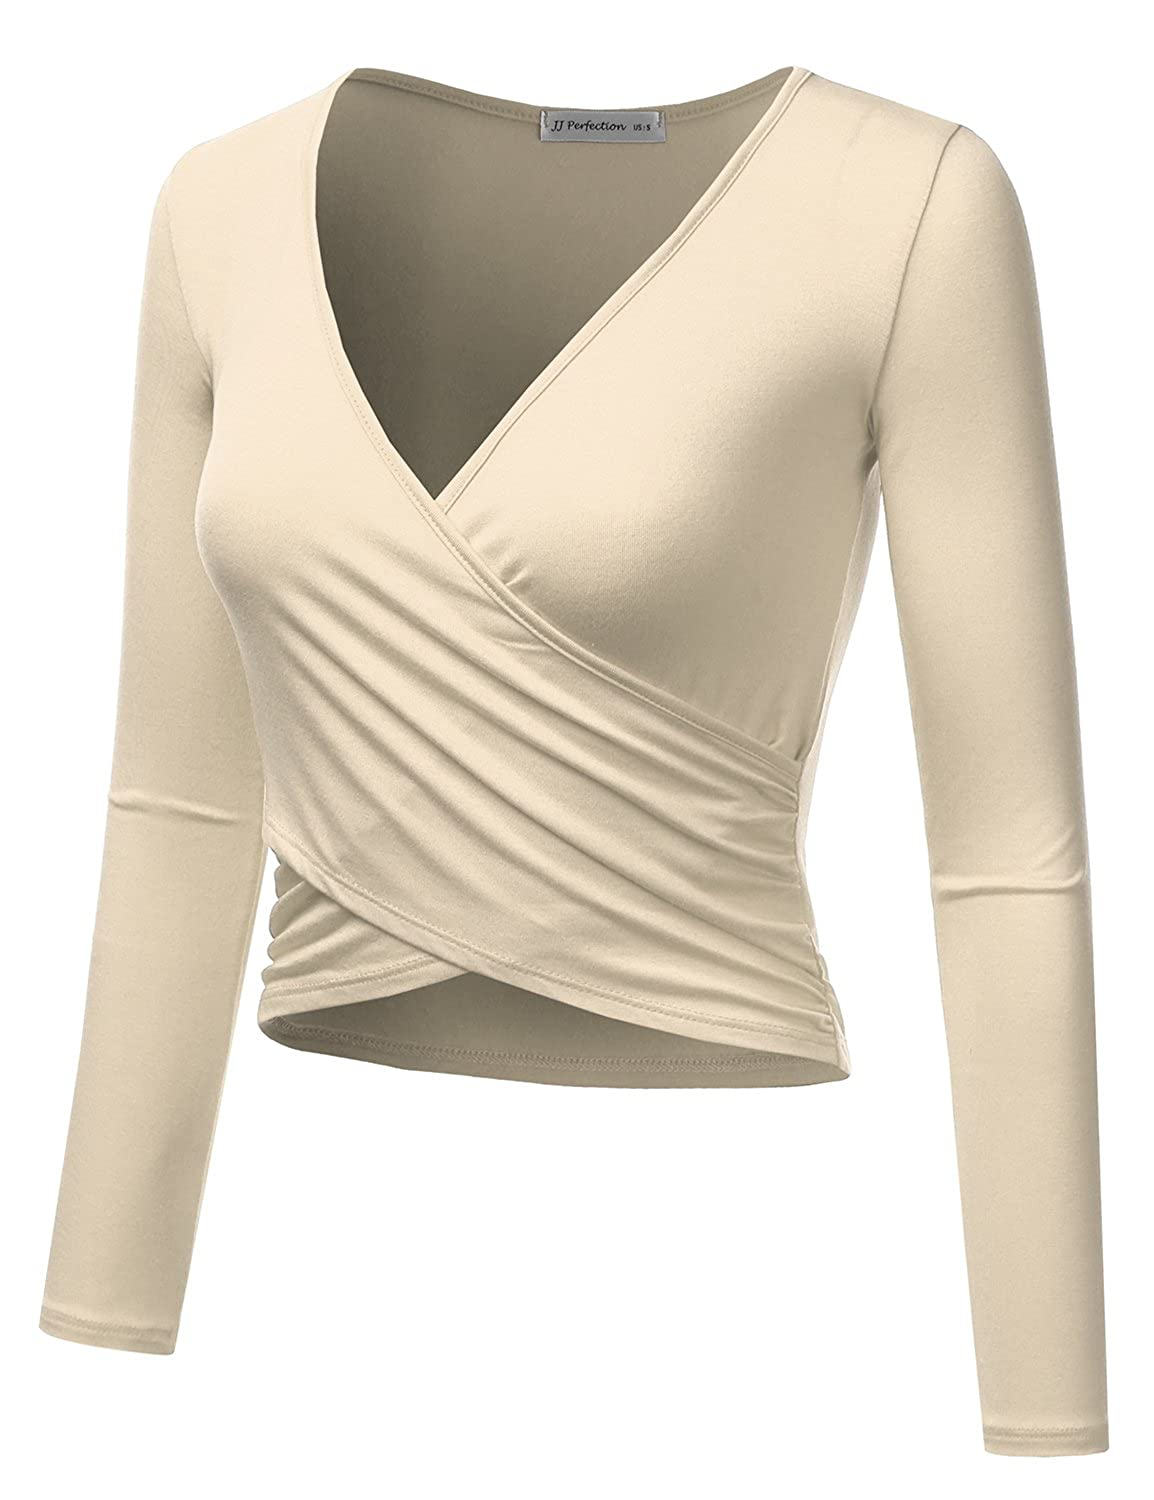 6a3d7515fe3 JJ Perfection Women's Long Sleeve Deep V Neck Unique Cross Wrap Crop Top at  Amazon Women's Clothing store: